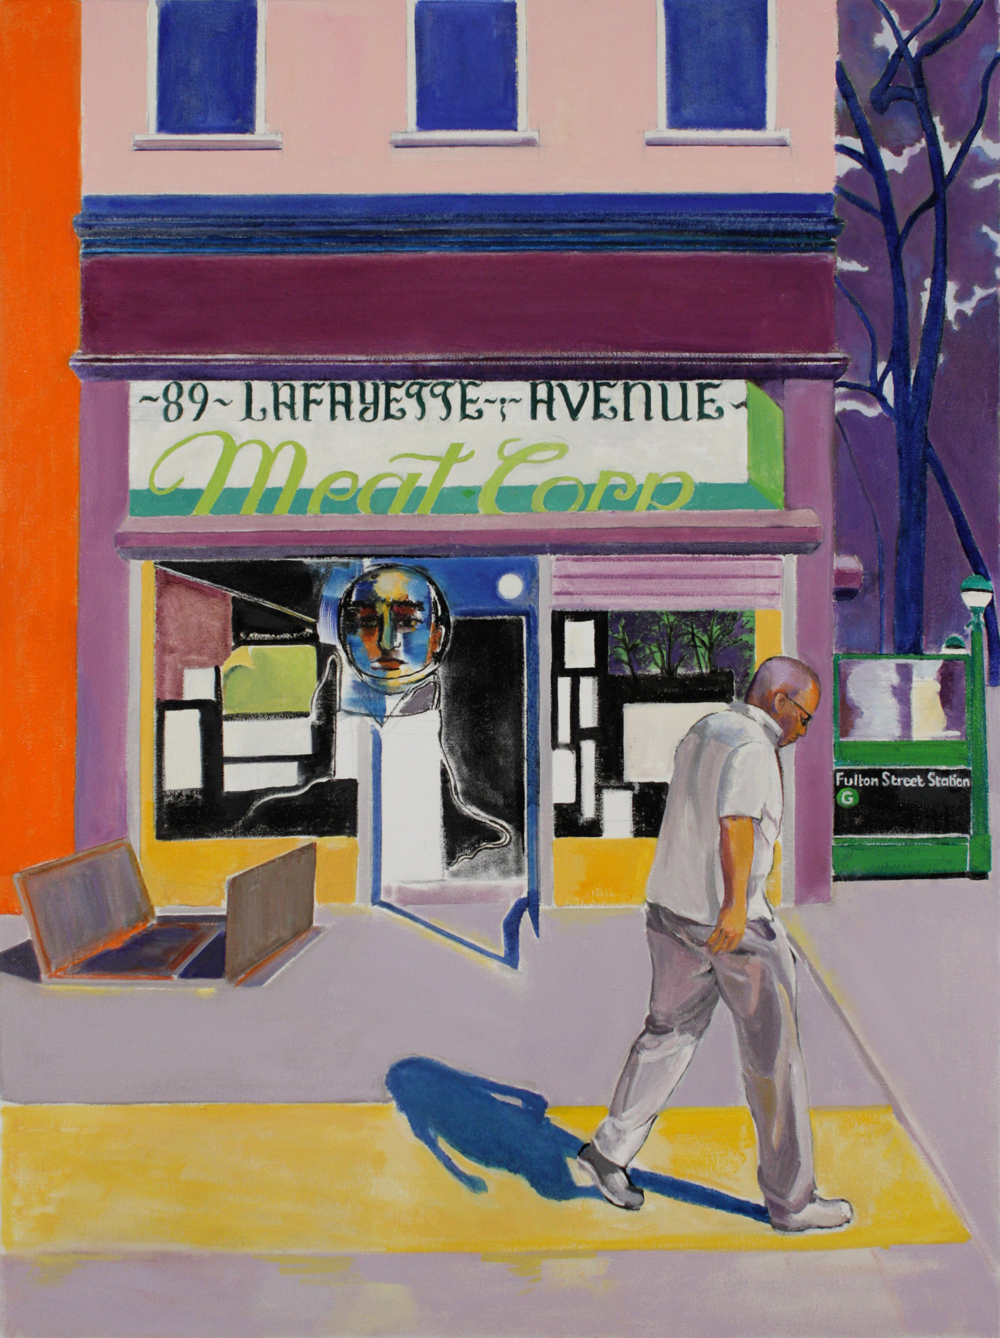 "89 LaFayette Avenue , 2017, oil paint on canvas, 40"" x 30"""